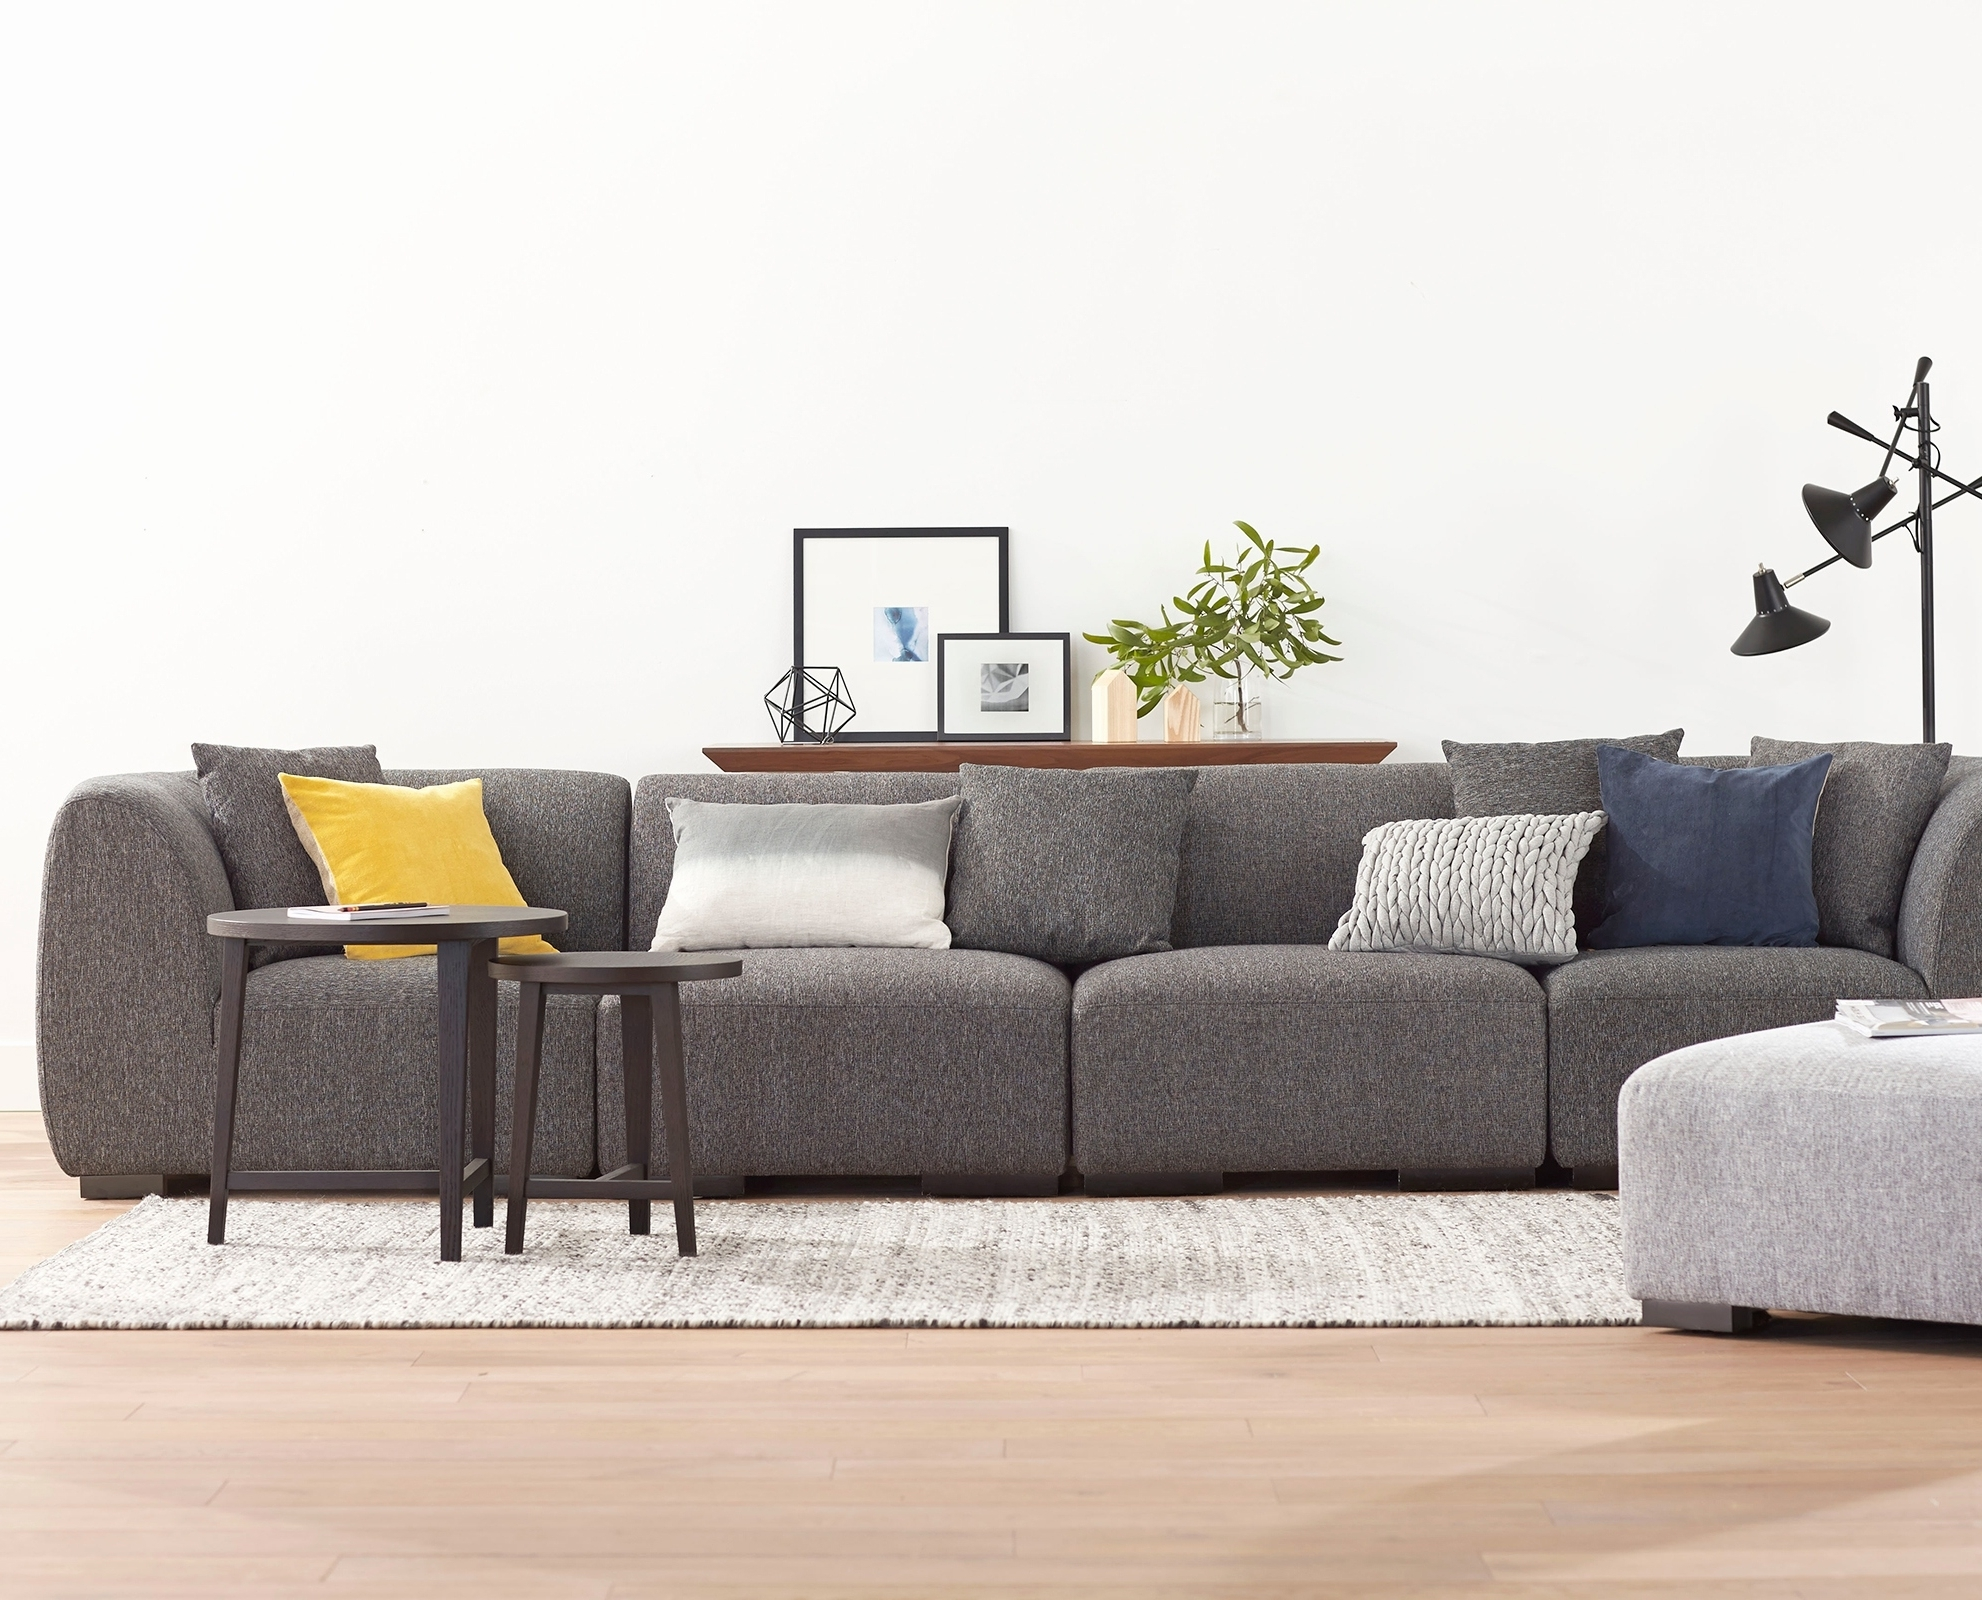 Canada Sectional Sofas For Small Spaces Throughout Fashionable Fresh Sectional Sofa Beds For Small Spaces 2018 – Couches And (View 6 of 20)